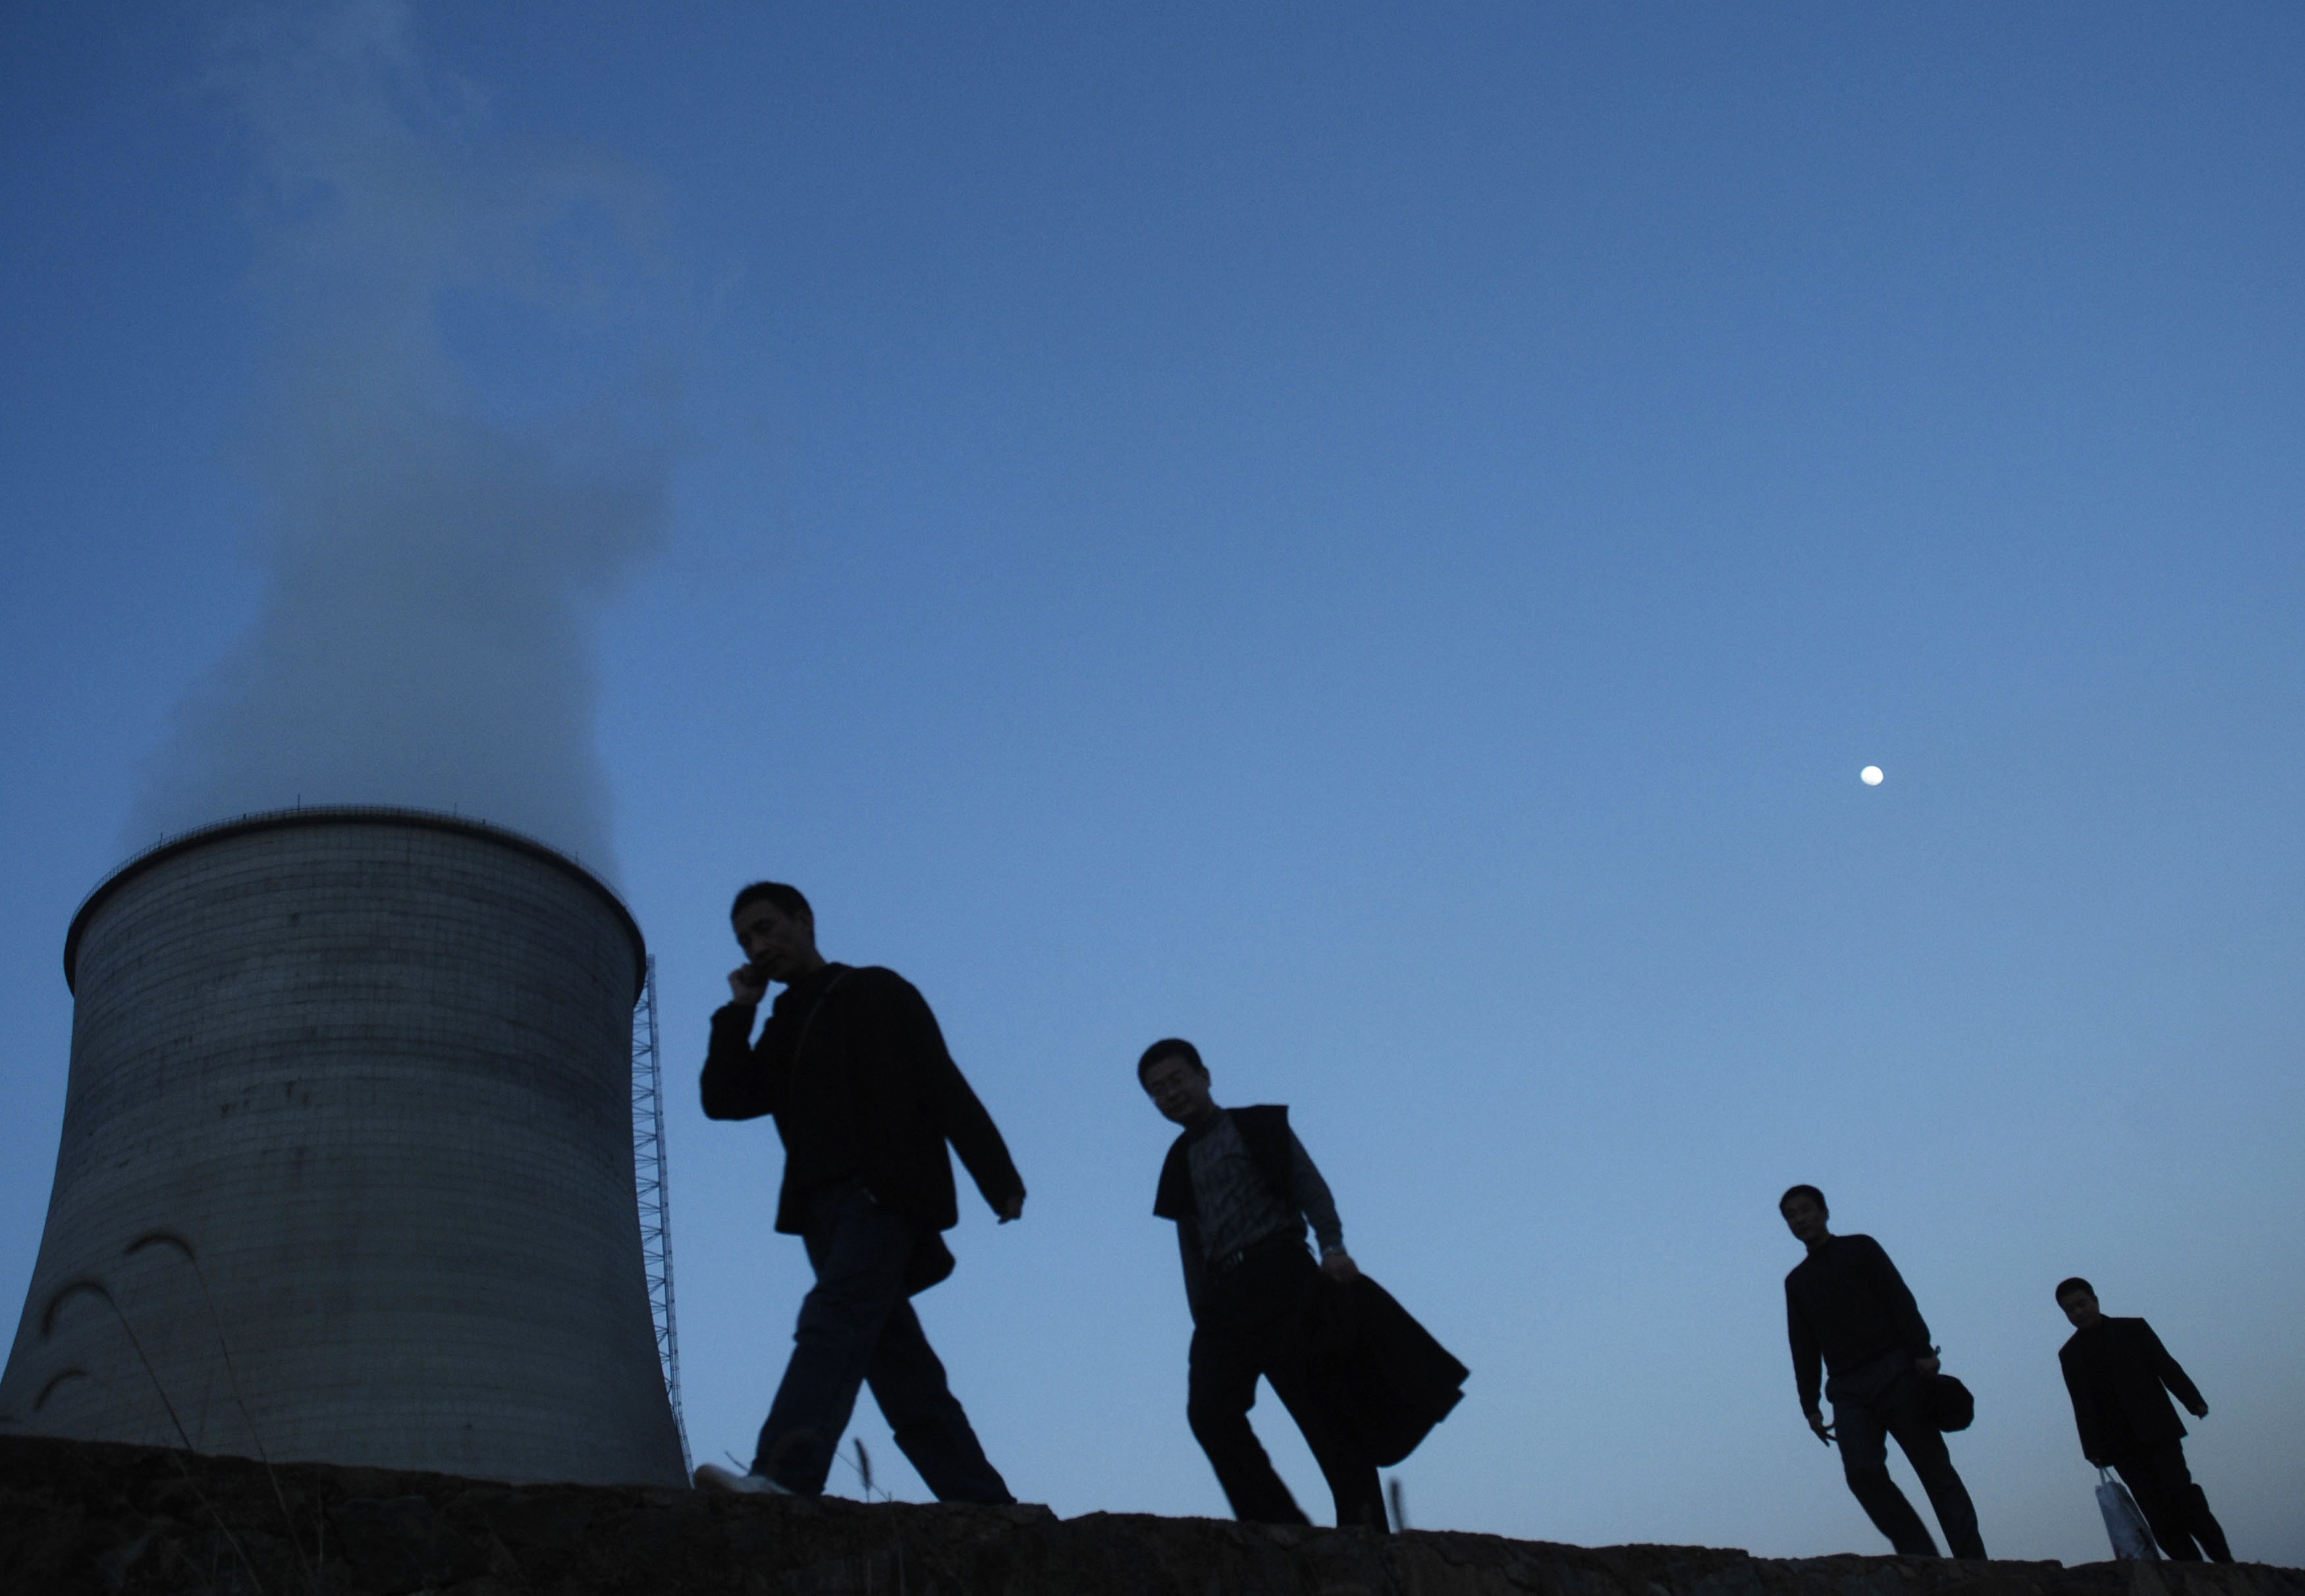 People walk on a street past a power plant's cooling tower in Yingtan, Jiangxi province December 11, 2008. Picture taken December 11, 2008. REUTERS/Stringer (CHINA).  CHINA OUT. NO COMMERCIAL OR EDITORIAL SALES IN CHINA. - GM1E4CC14A801